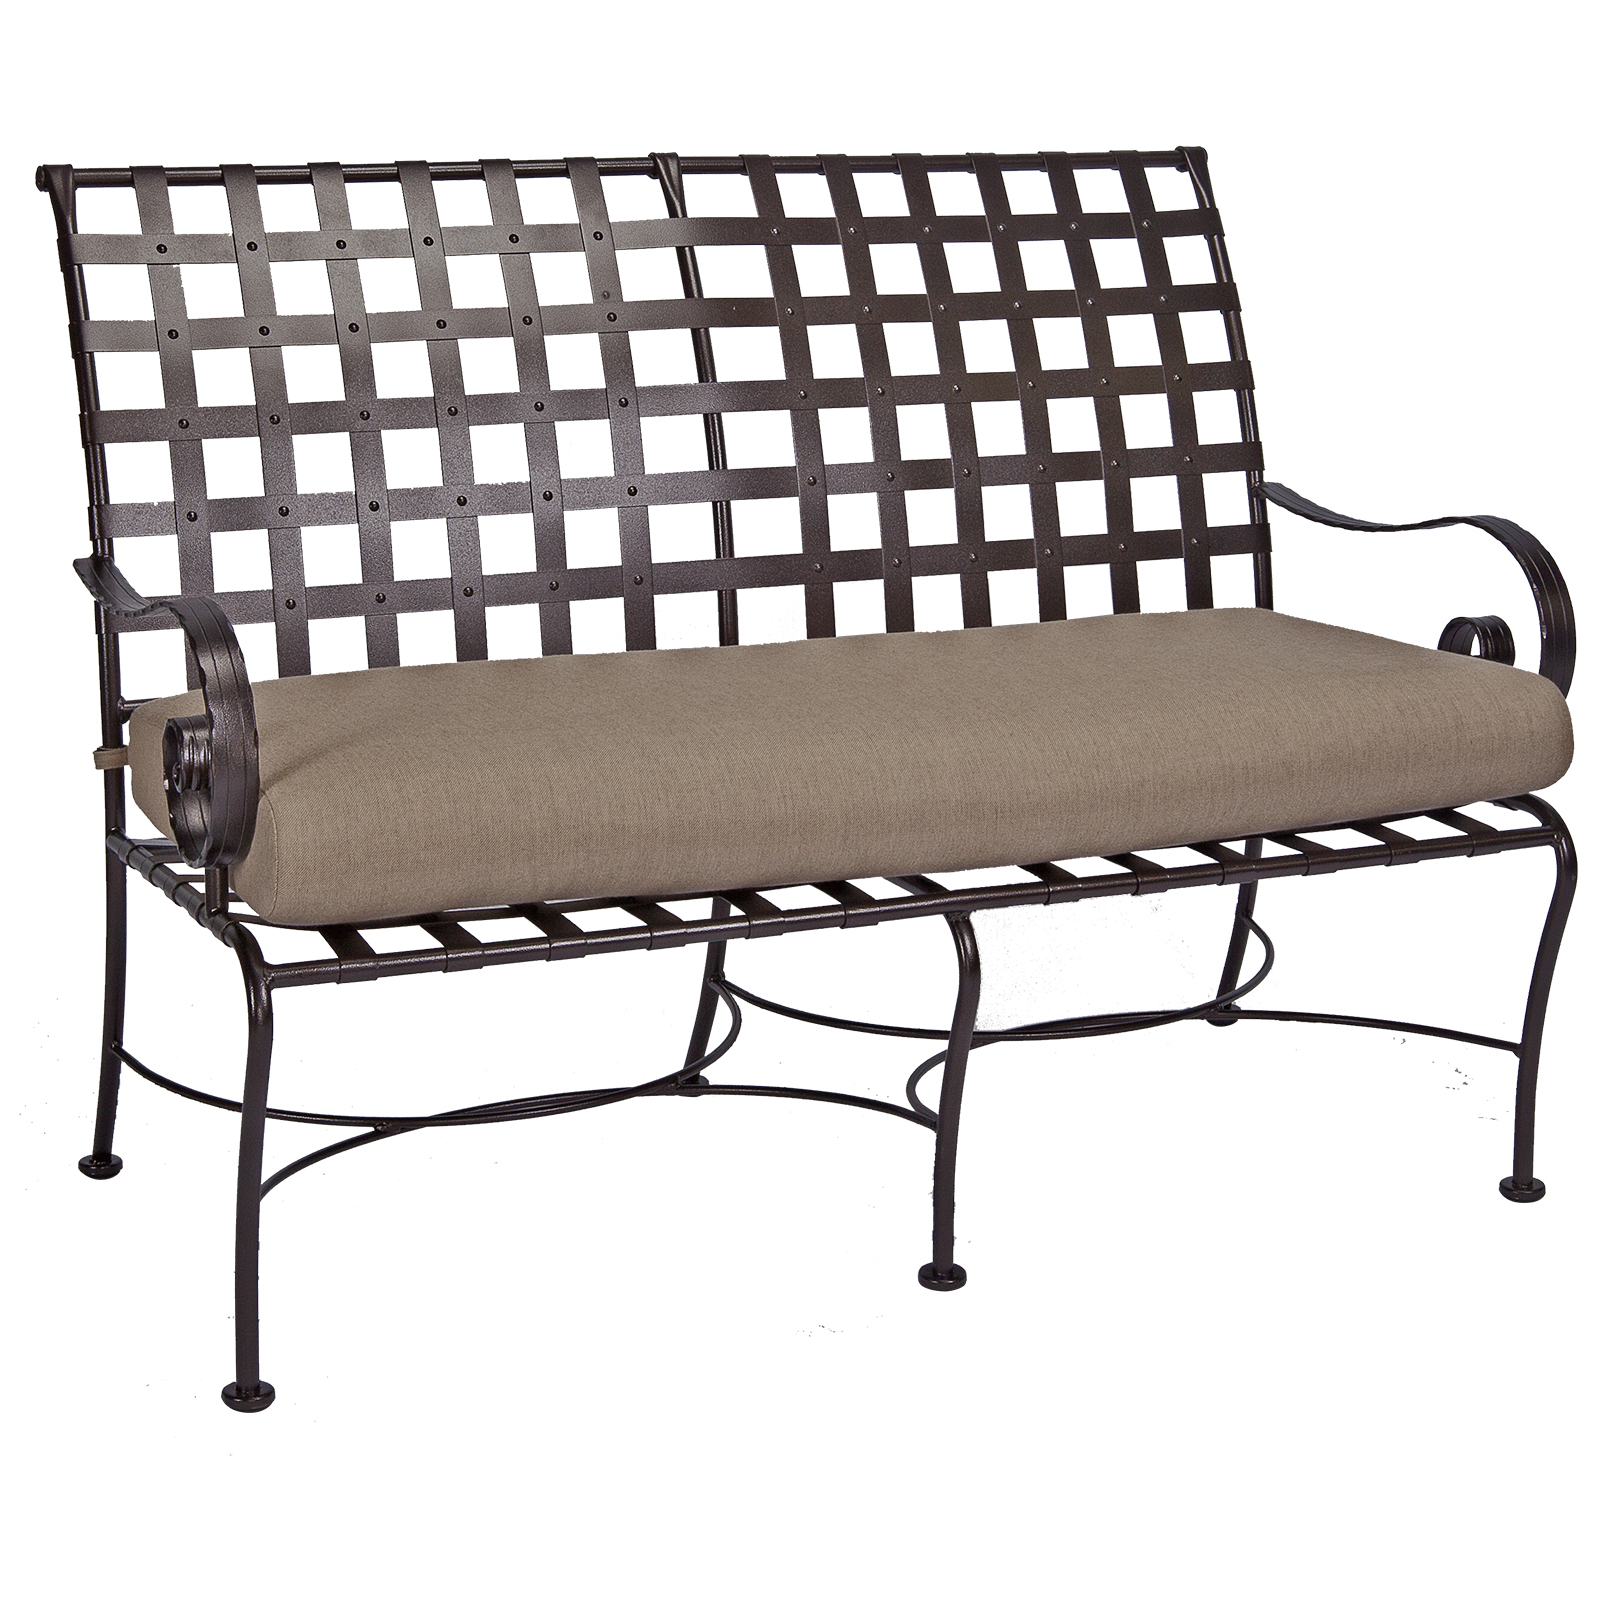 Bench-947-BW_Catalog_GR35_1600-Classico-W-OW-Lee